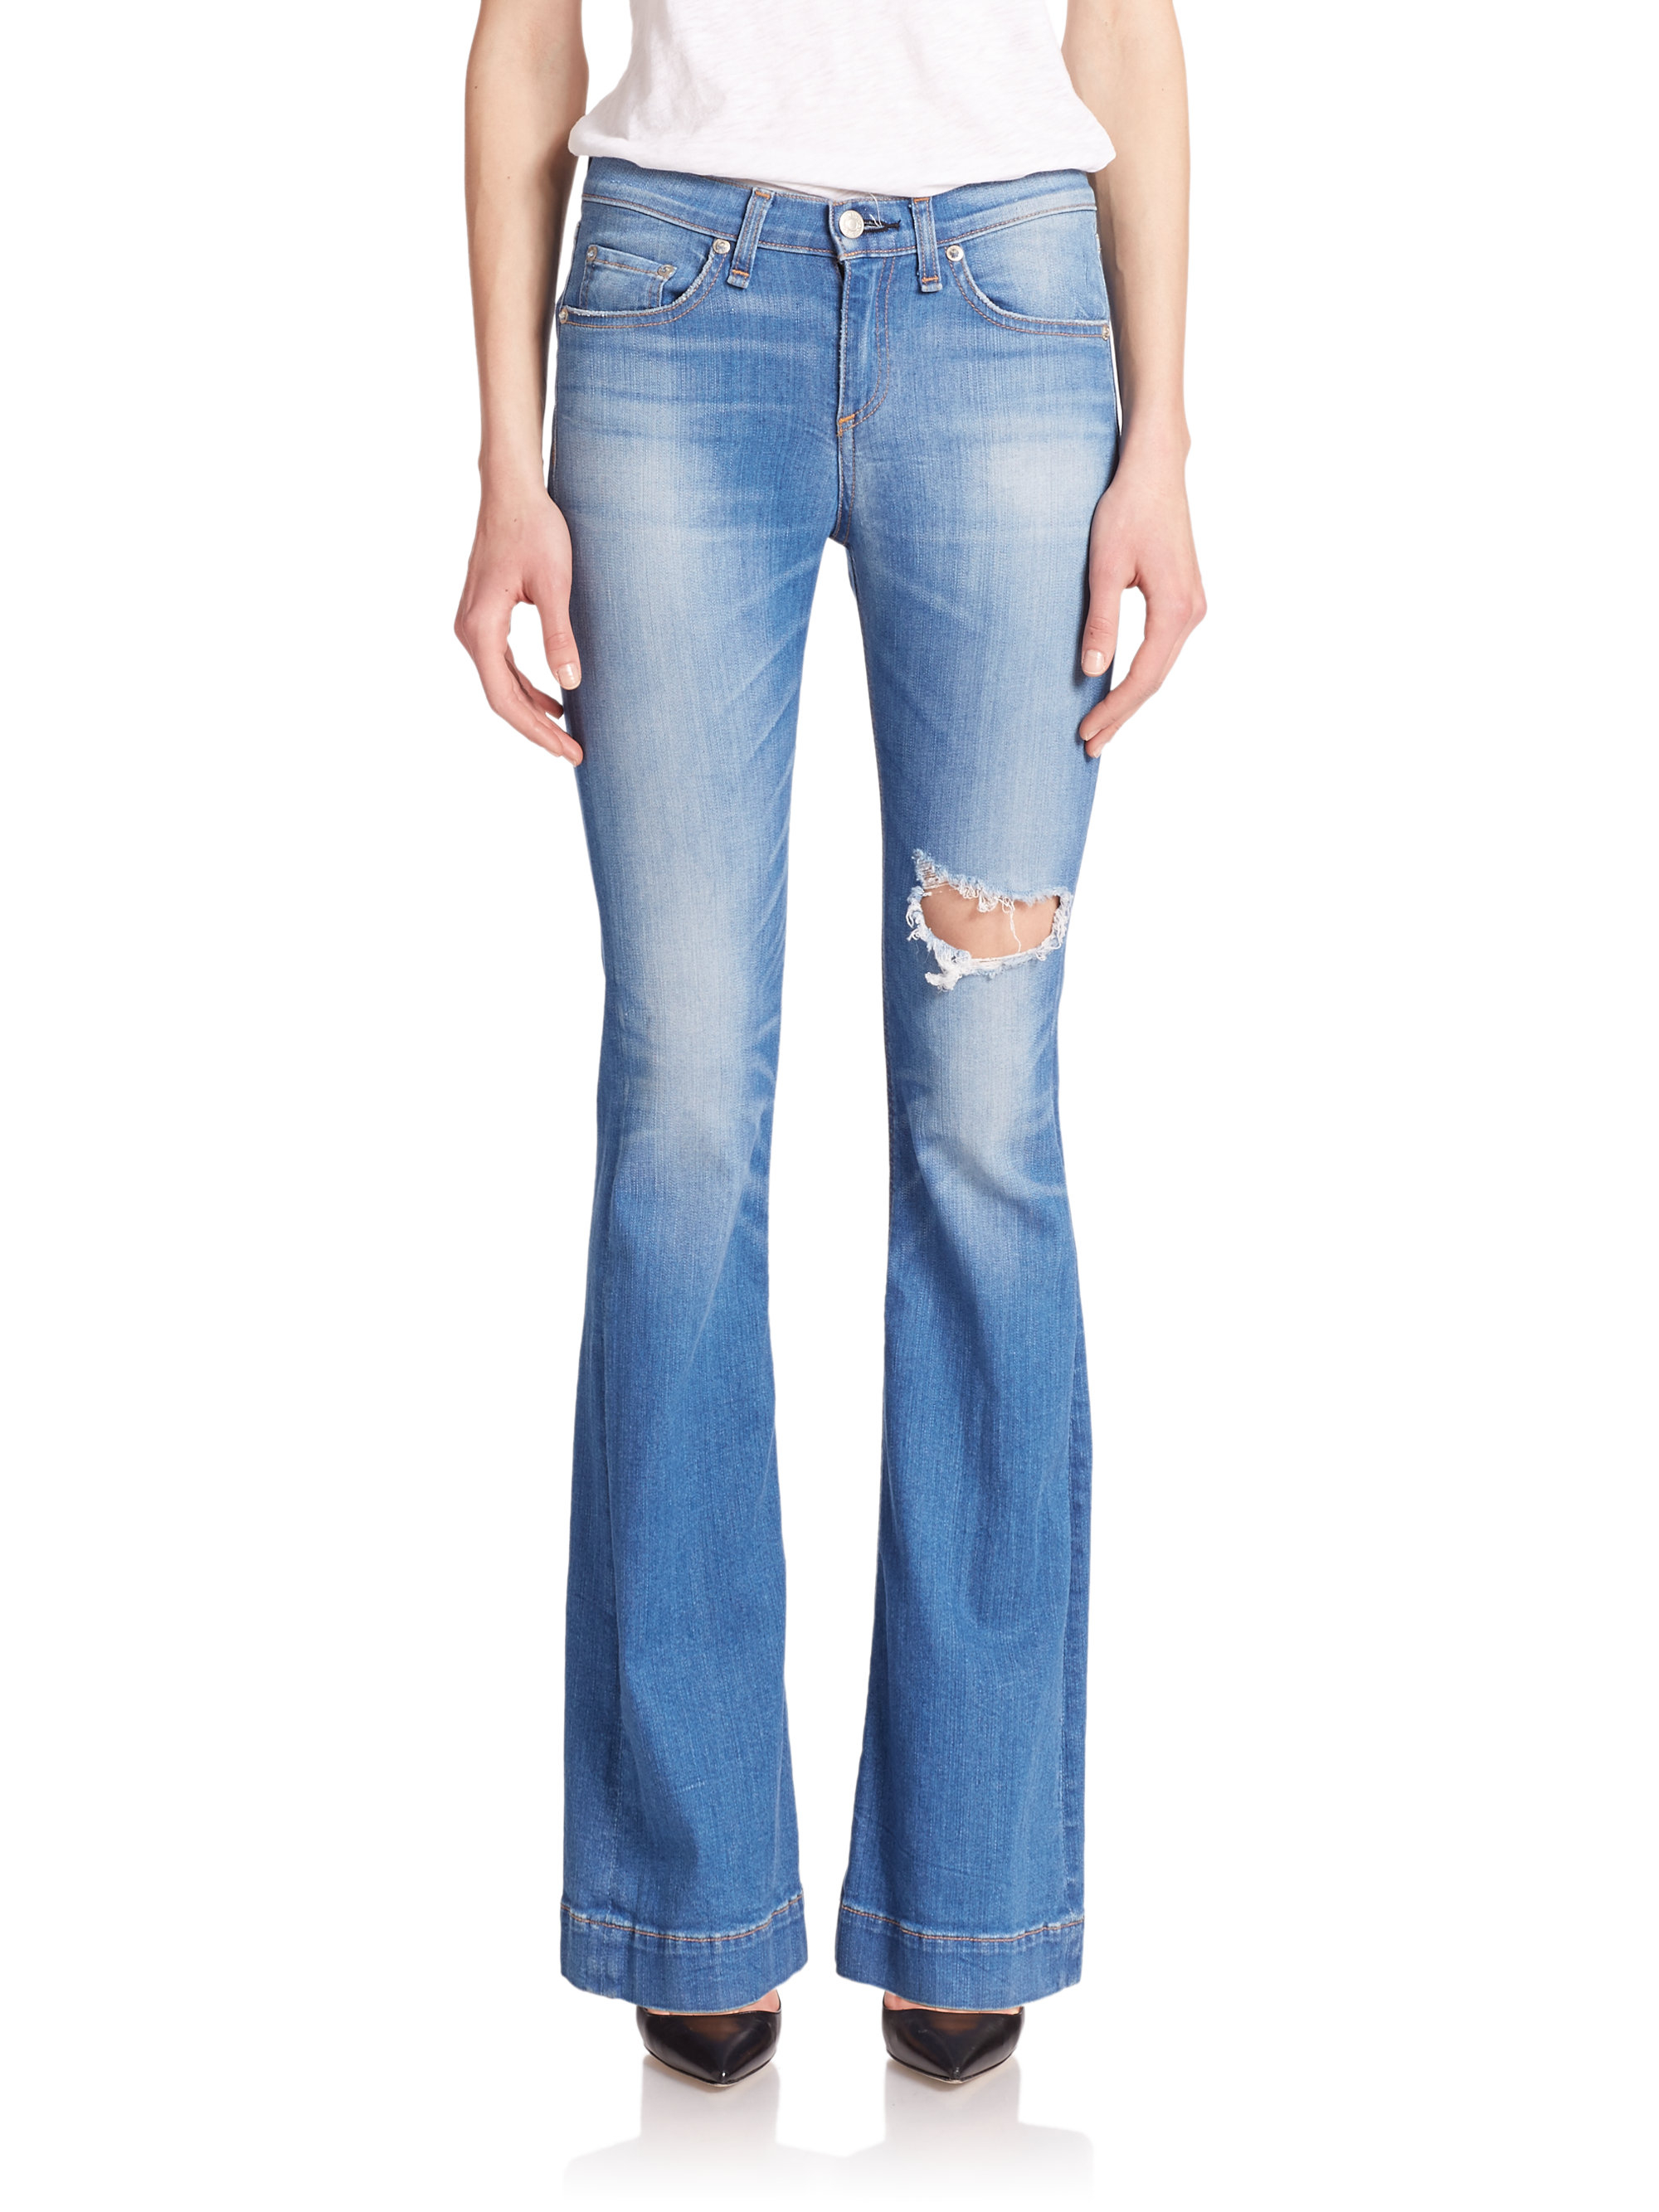 Rag & bone The High-rise Distressed Flare Jeans in Blue | Lyst